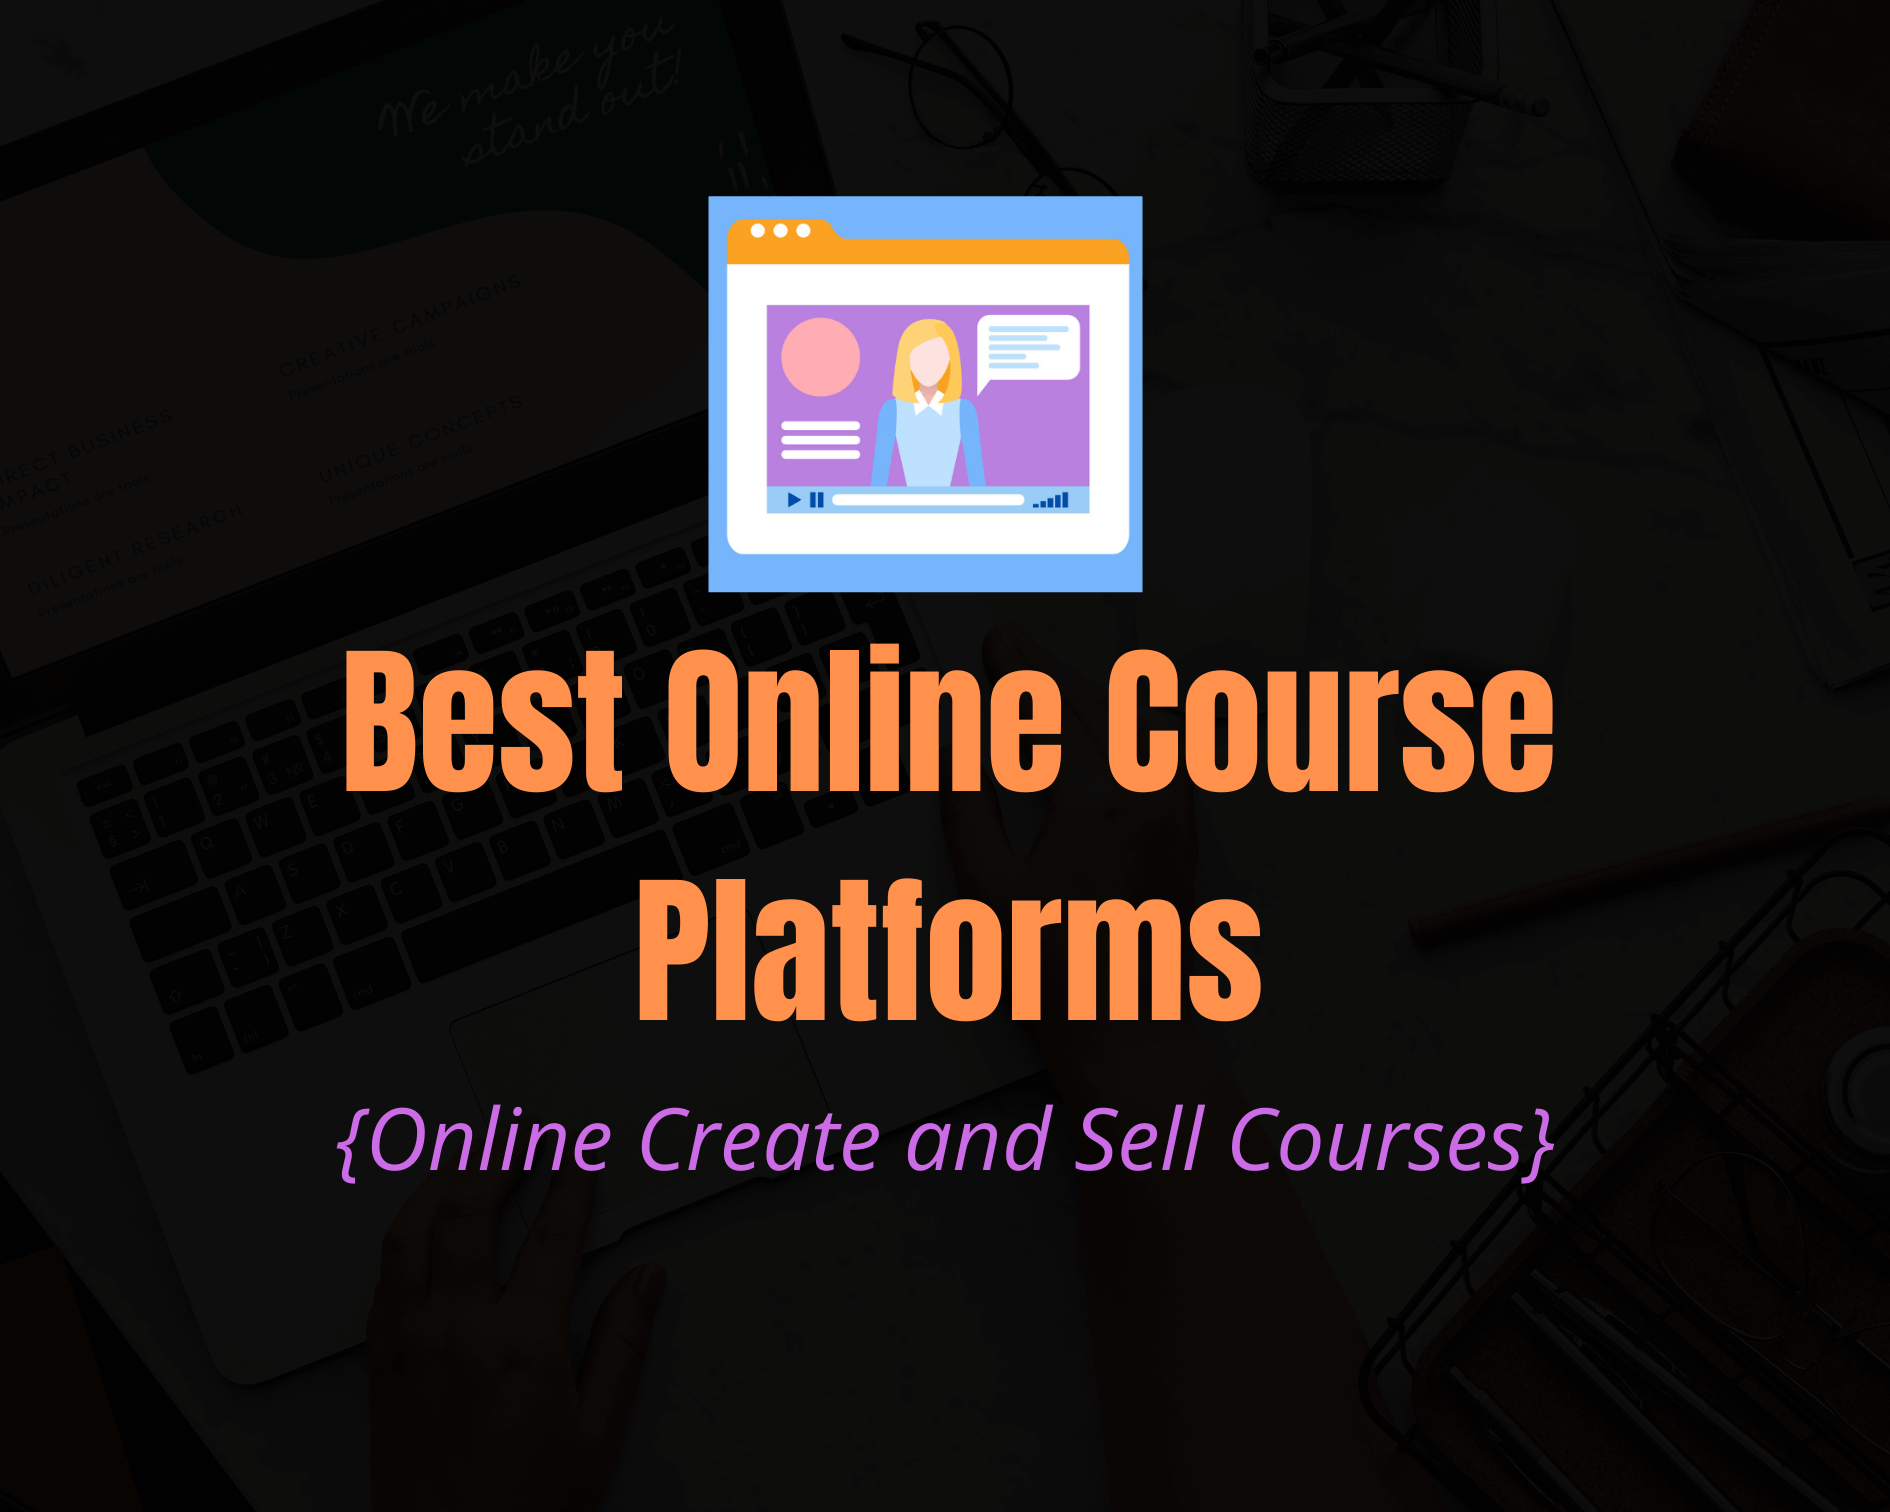 6 Best Online Course Platforms For 2020